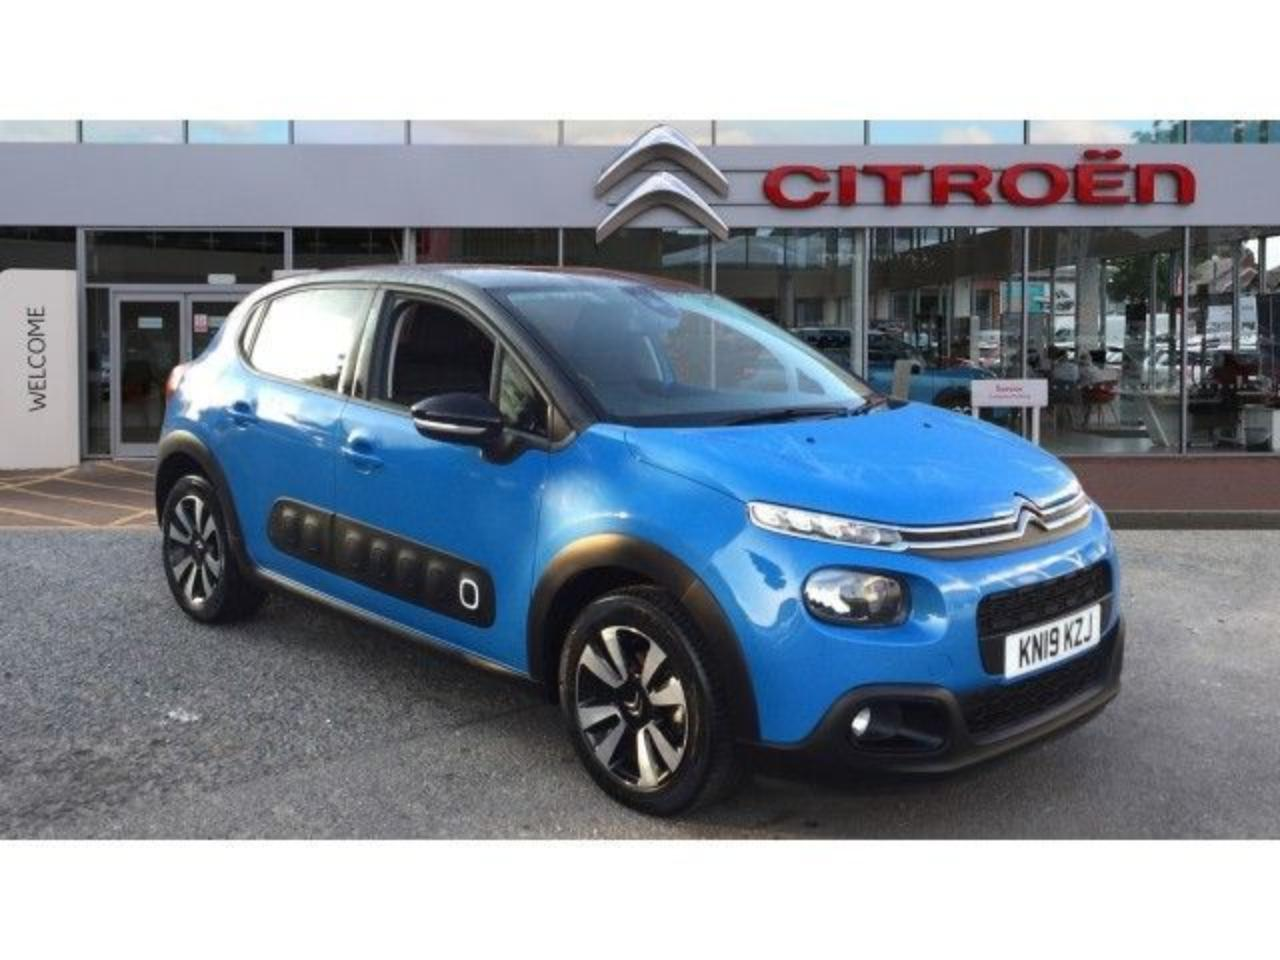 Citroën C3 1.2 PureTech 110 Flair 5dr [6 Speed] Petrol Hatchb